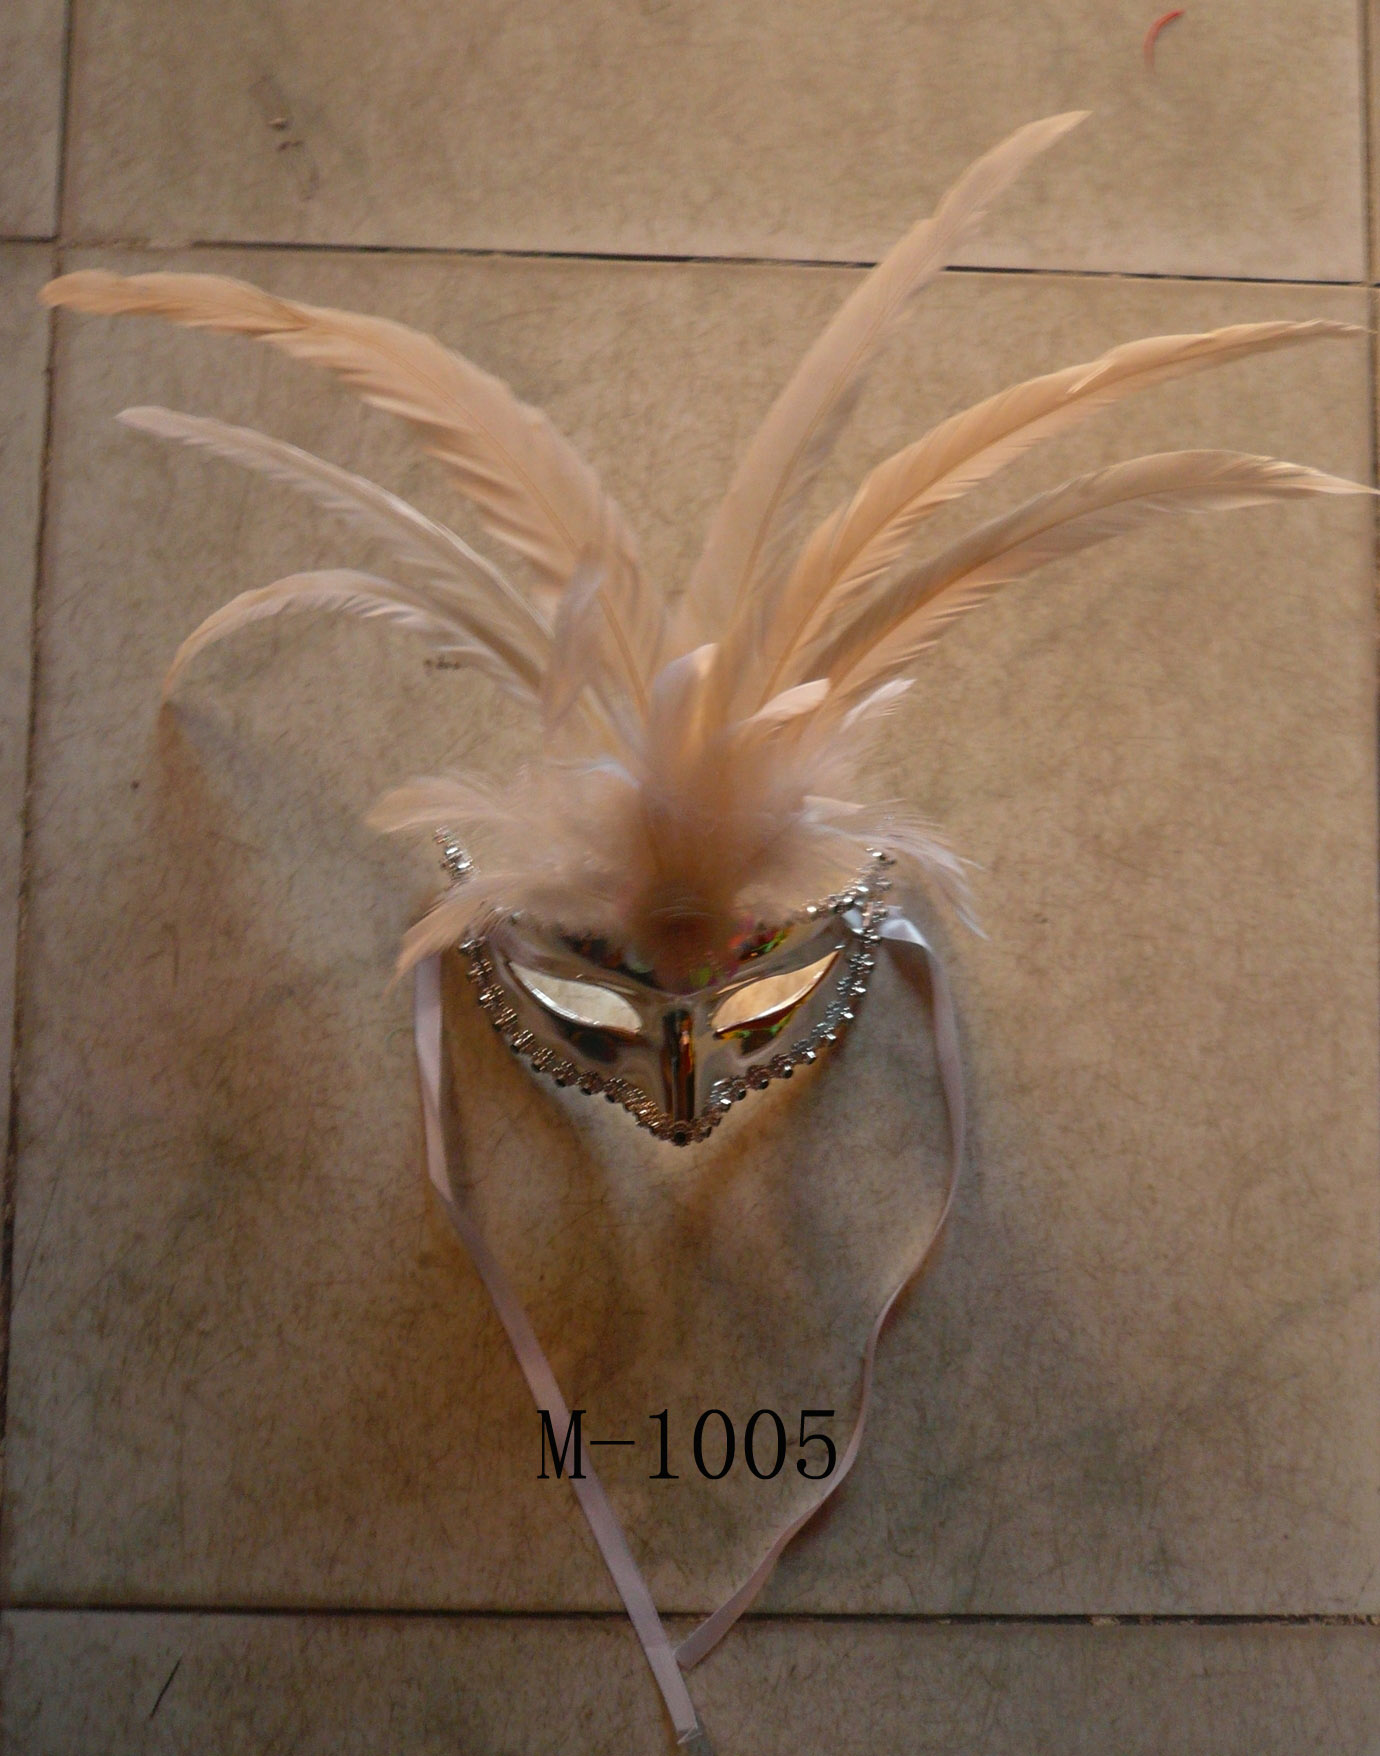 Cheap feather masks for sale - Made in China M-1005